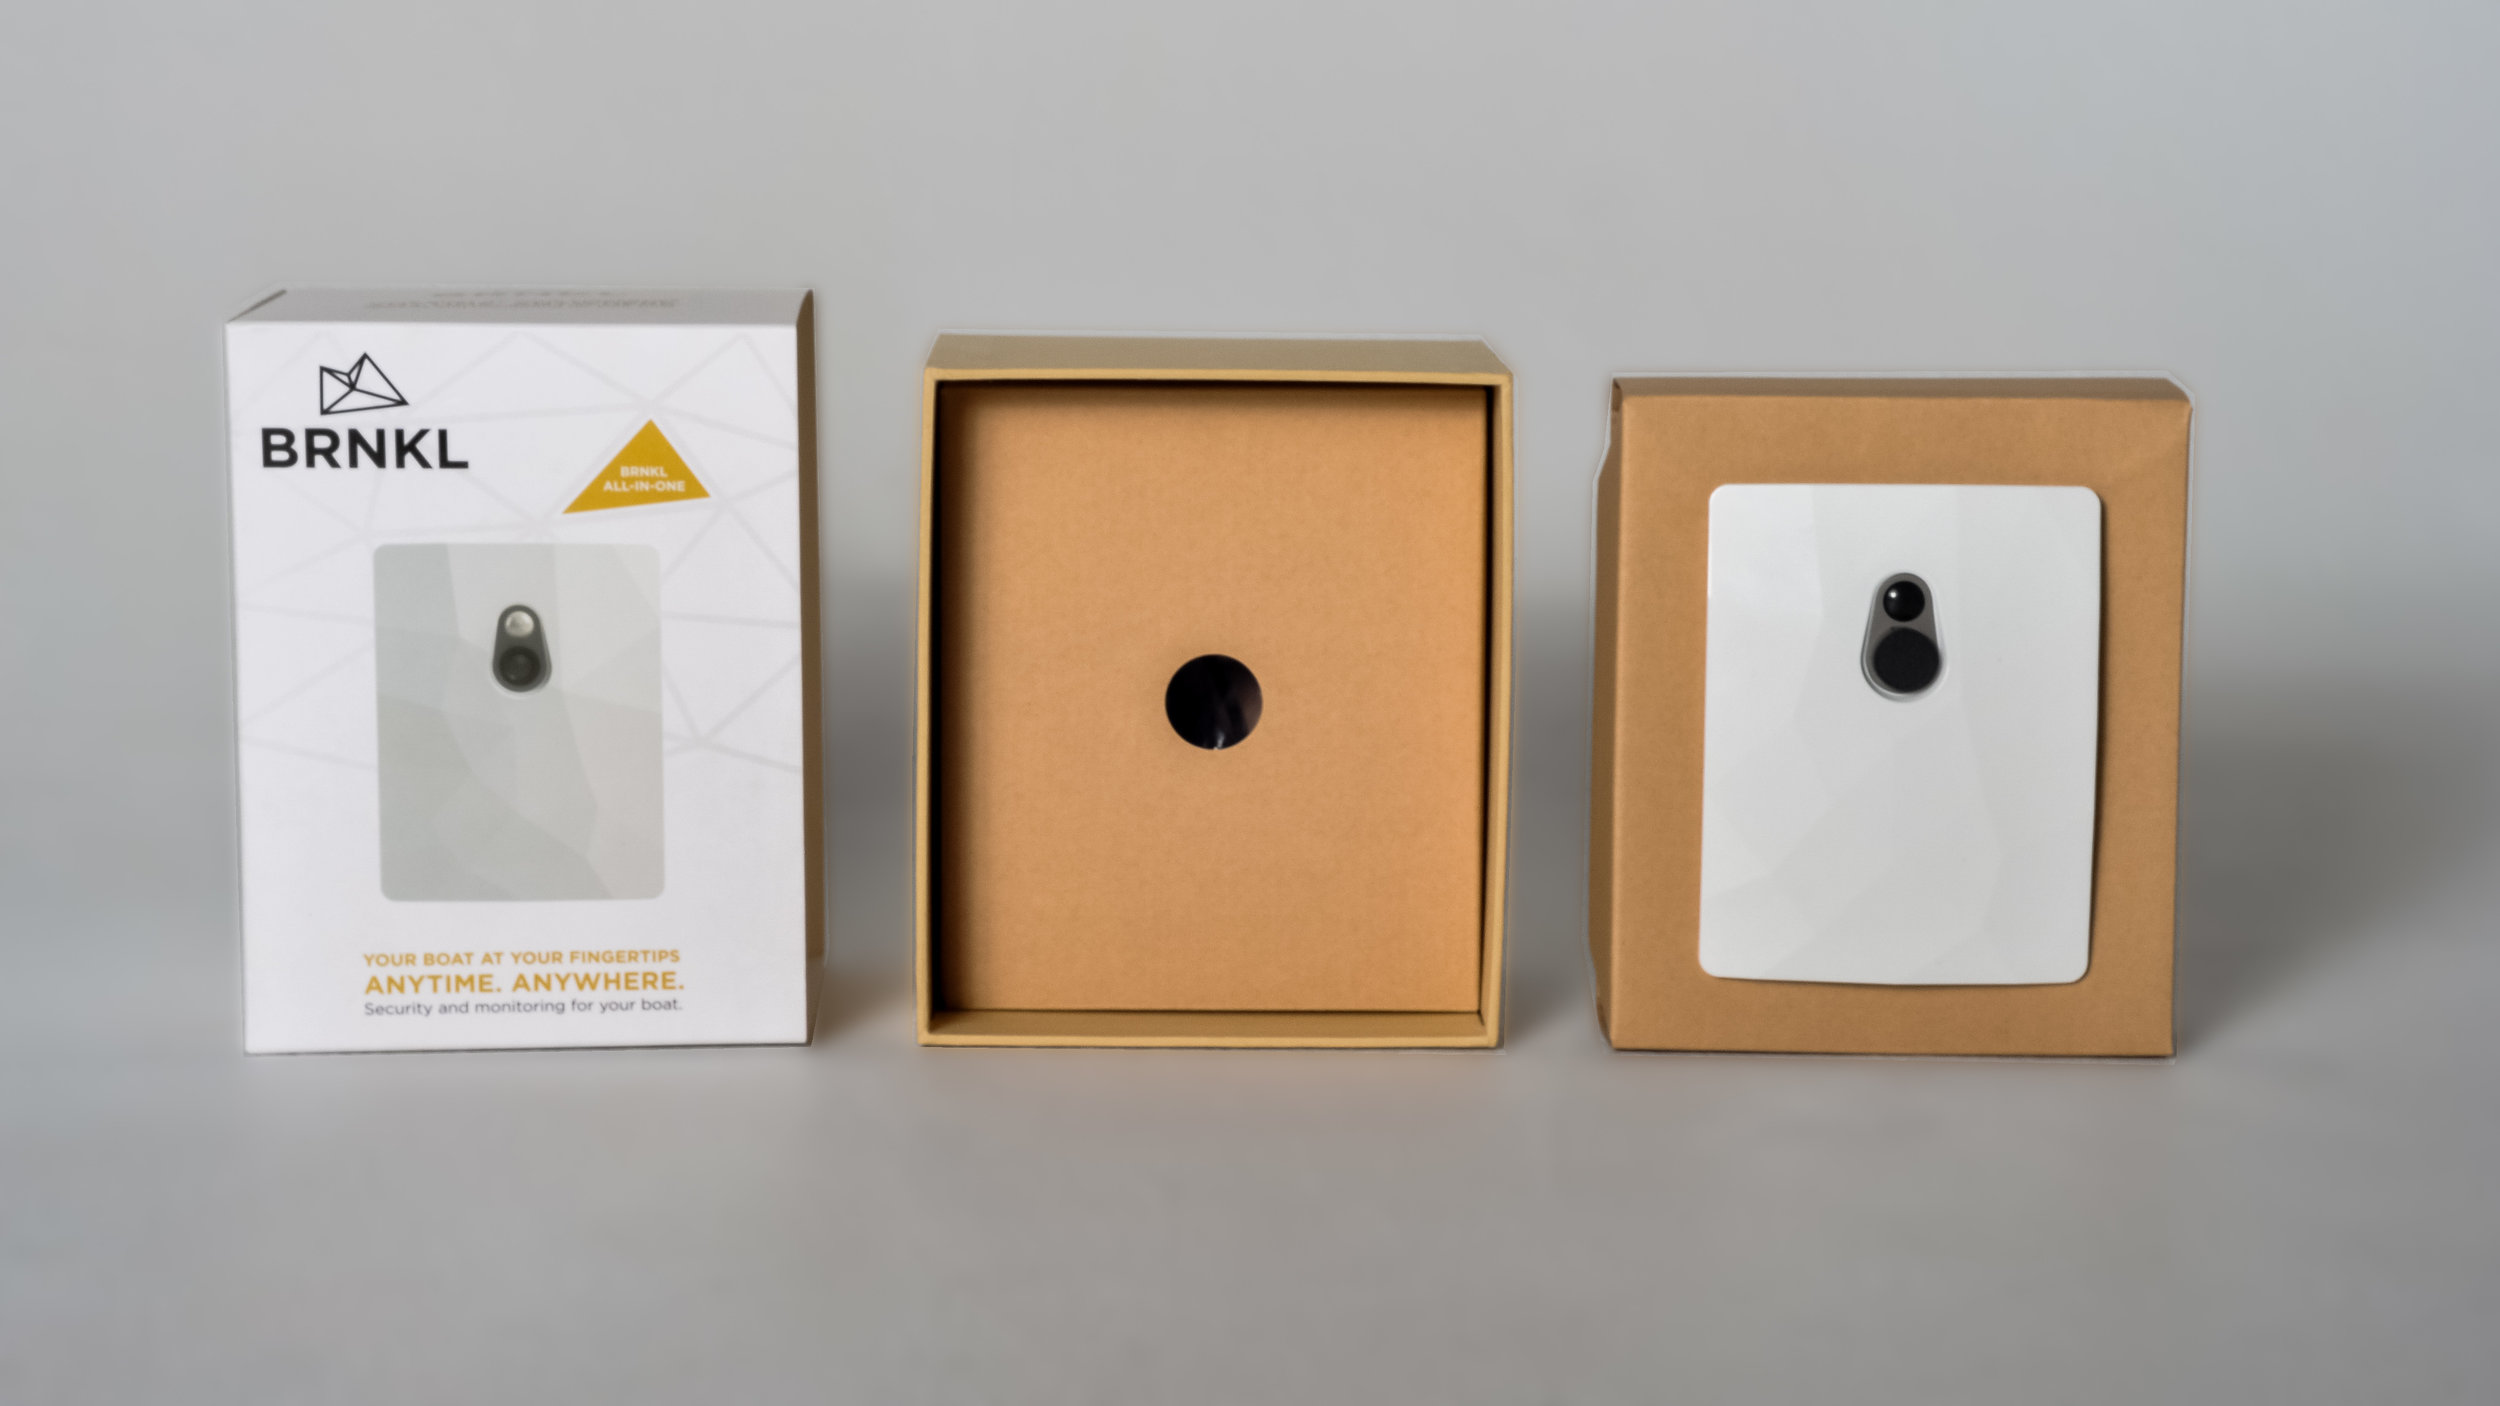 The result is a visually-grabbing packaging sleeve for the high-tech product, cohesive with the brand's image and strategy.